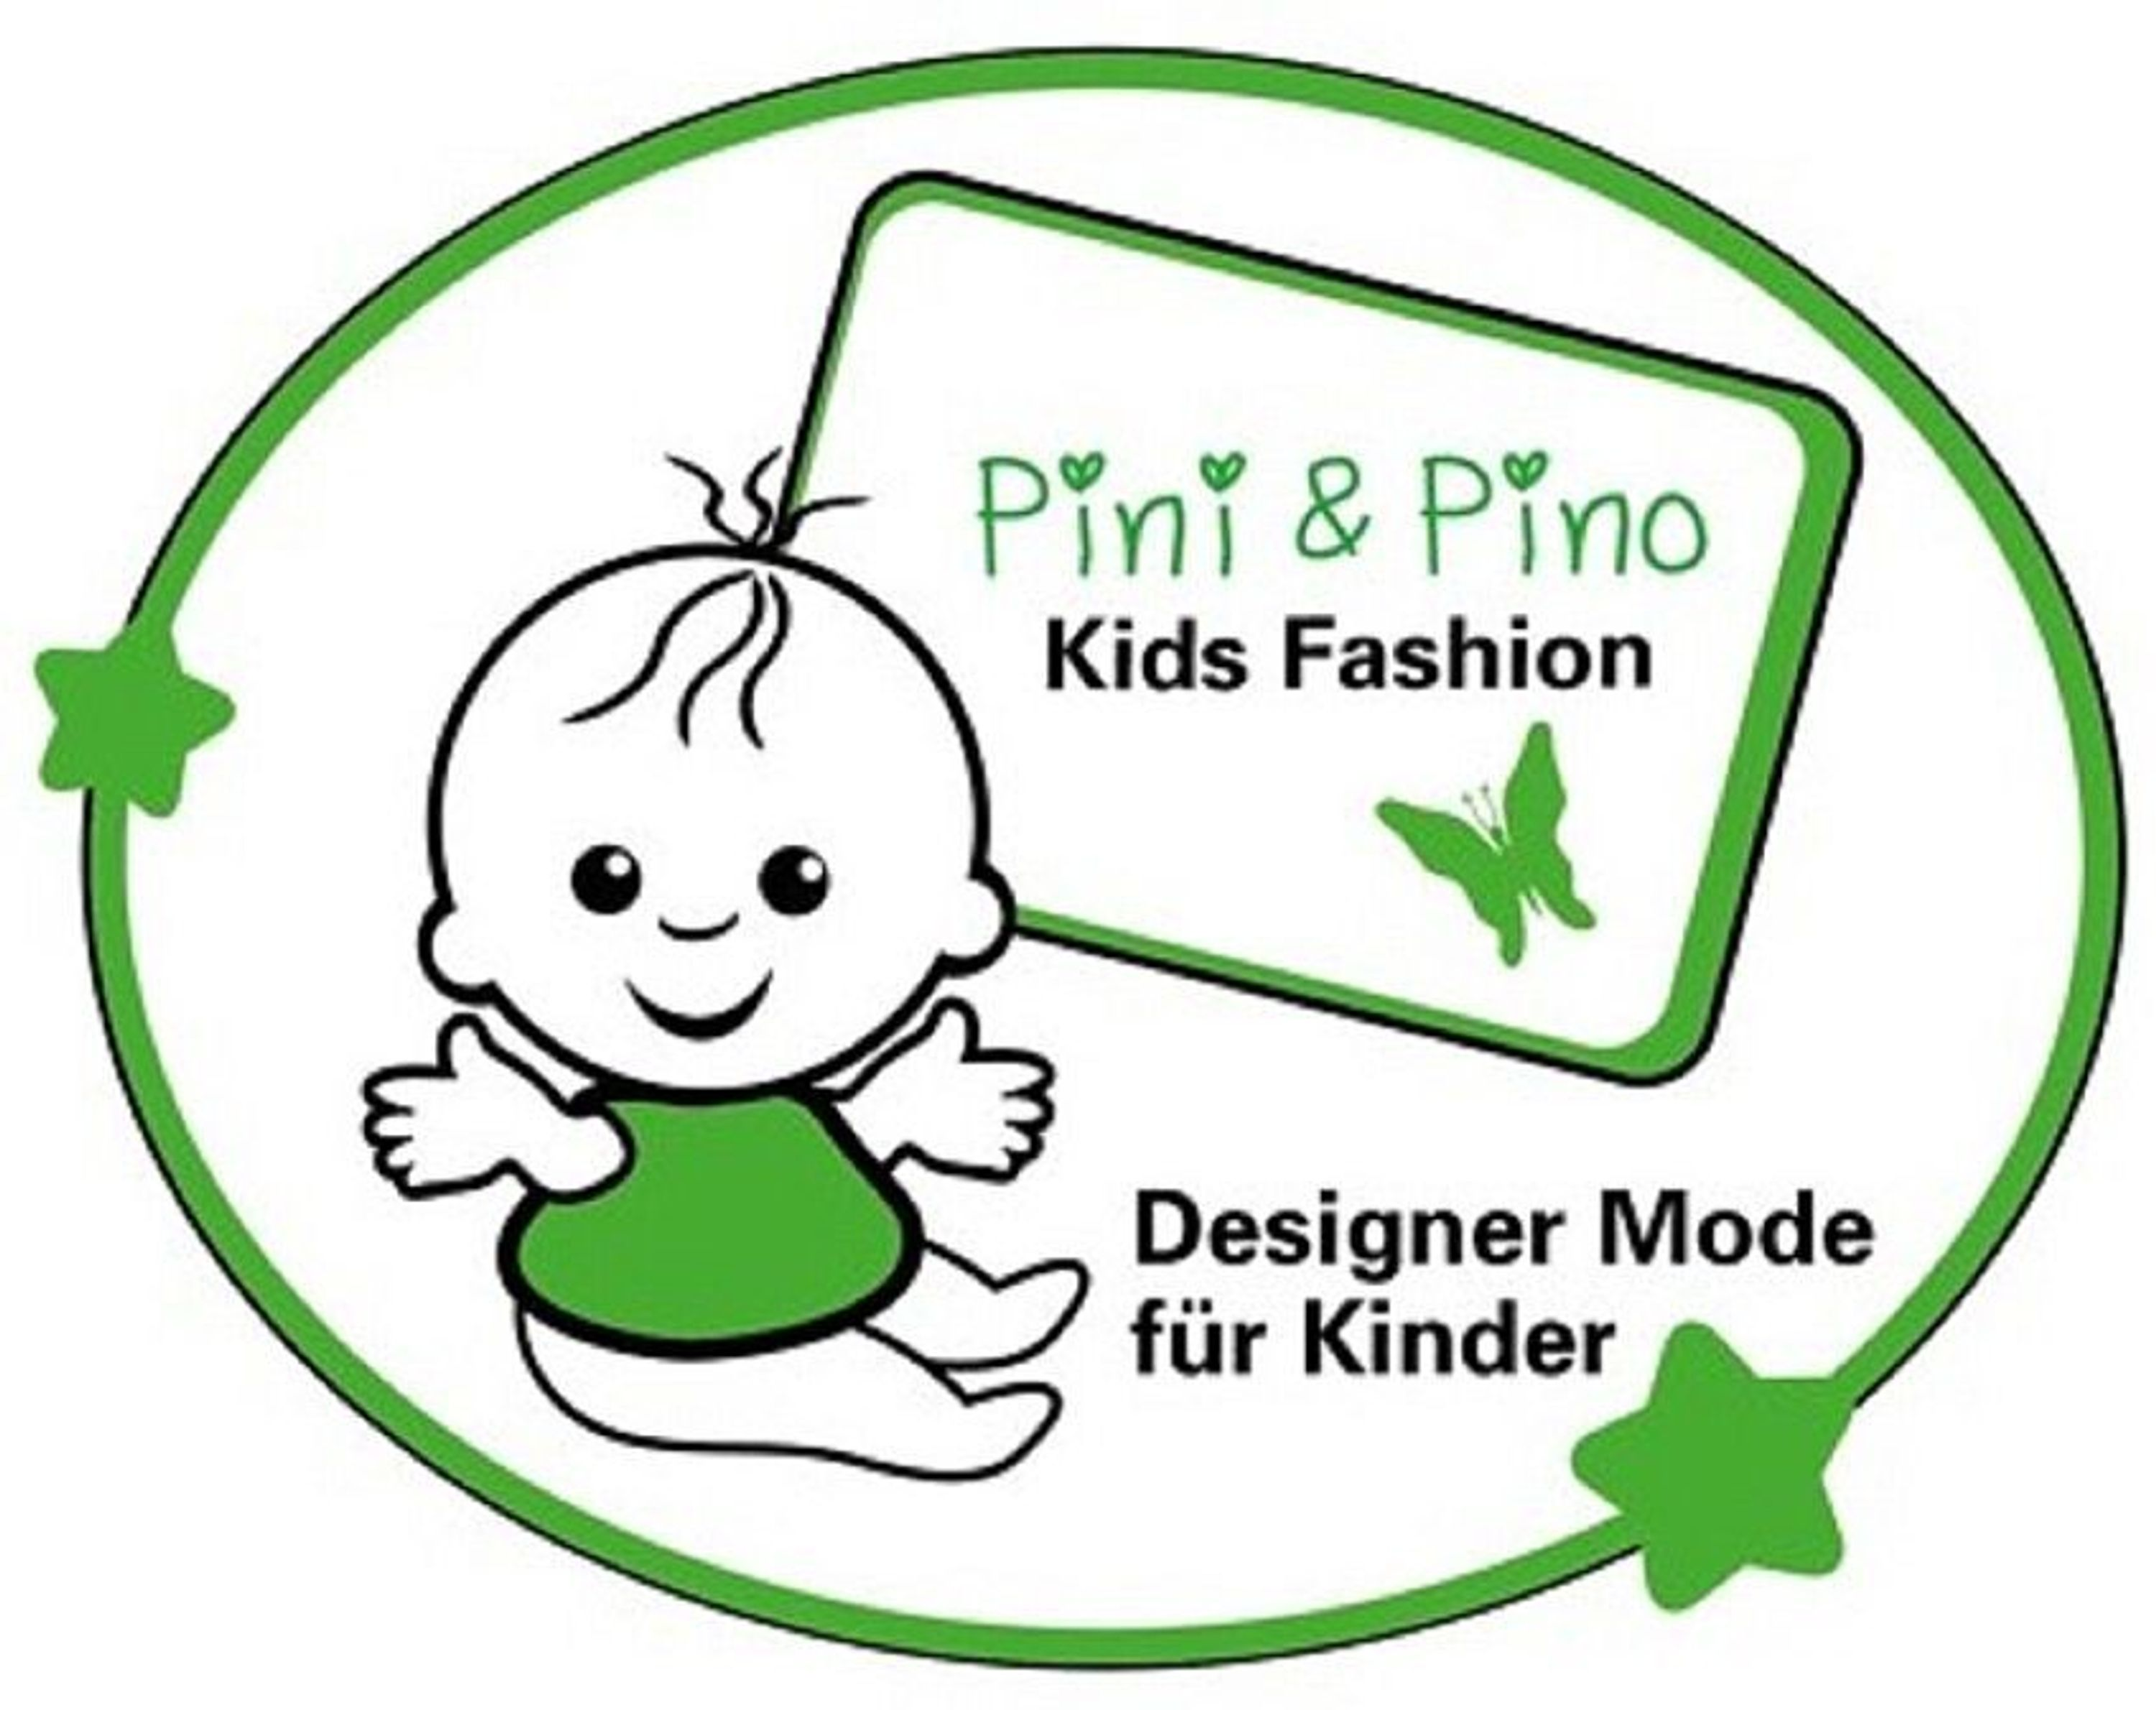 pini-pino-kinderfashion